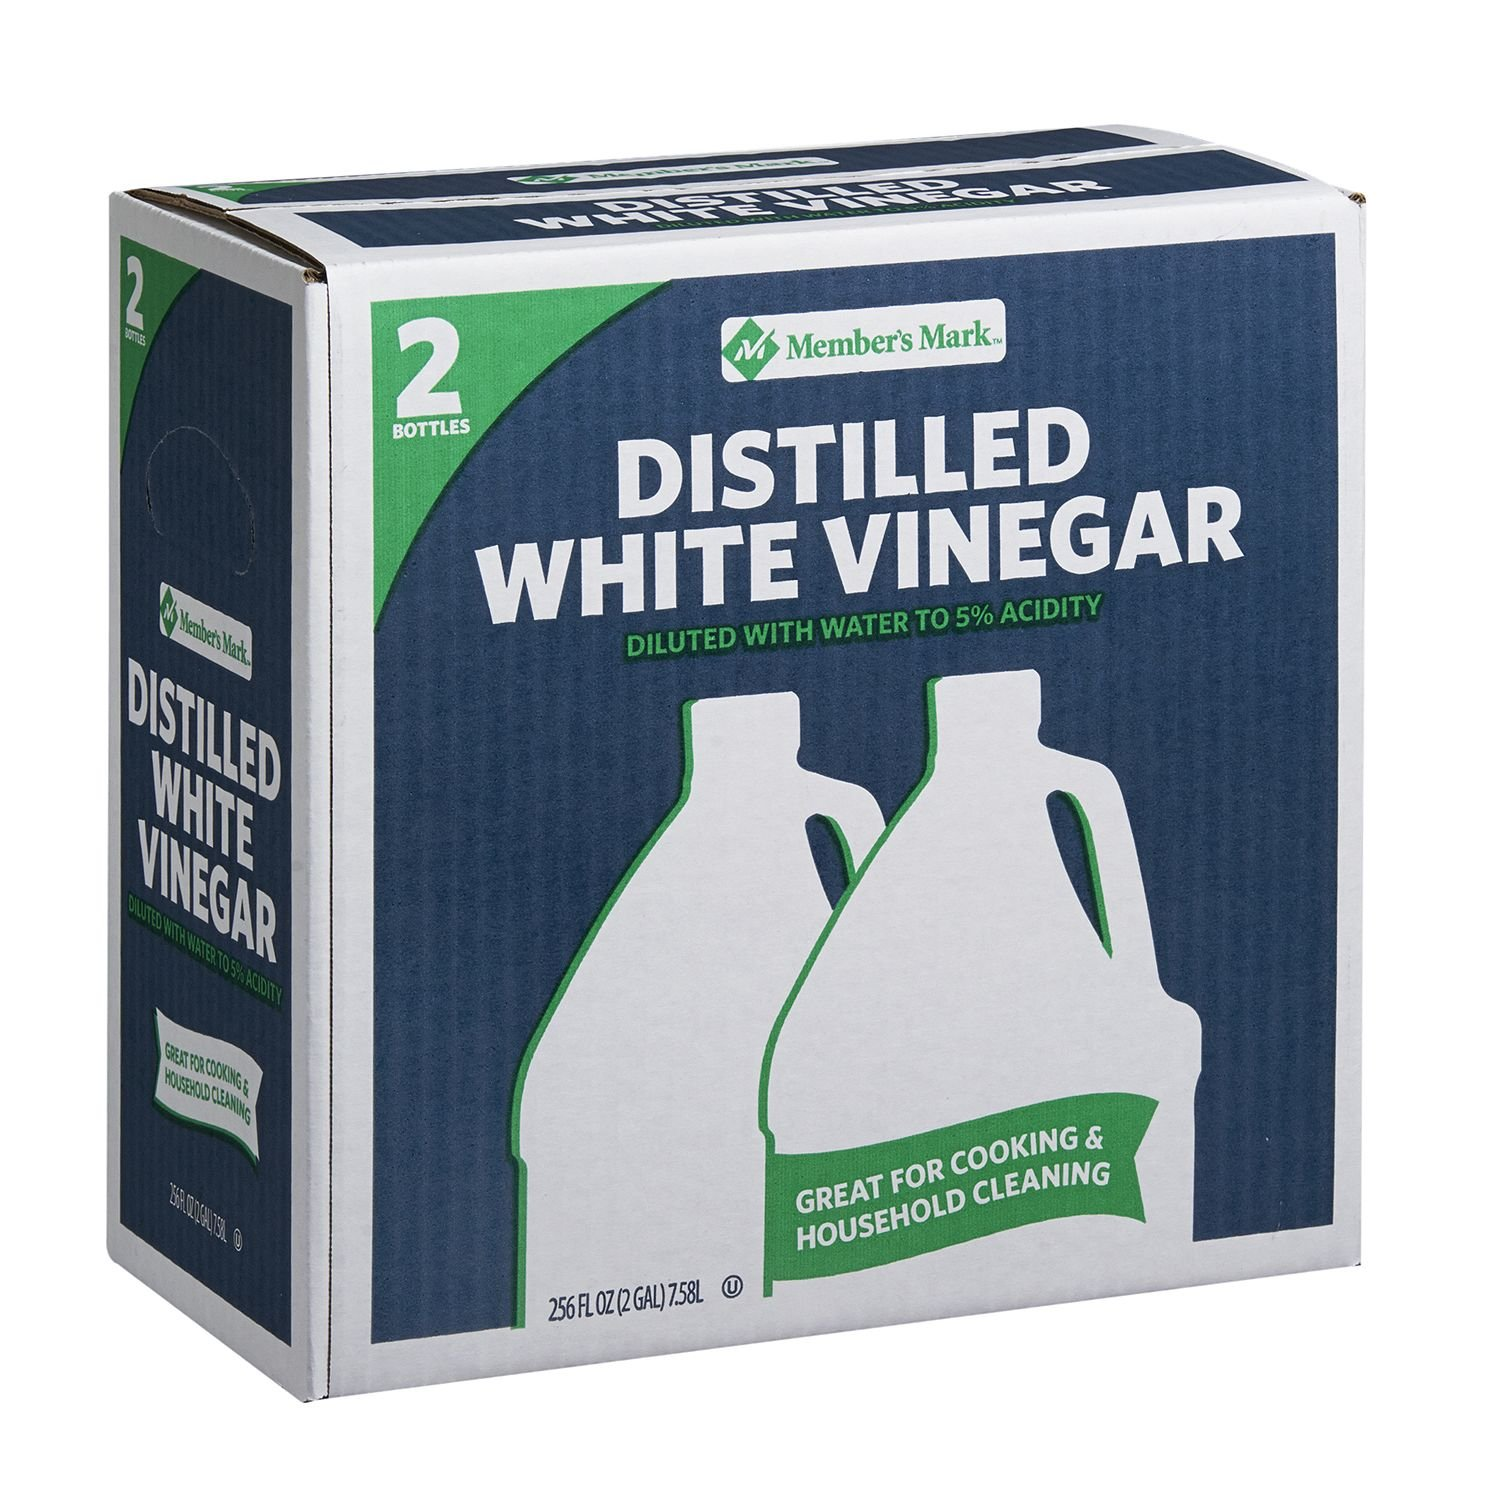 Member's Mark Distilled White Vinegar 1 gal. jug, 2 ct. (pack of 4) A1